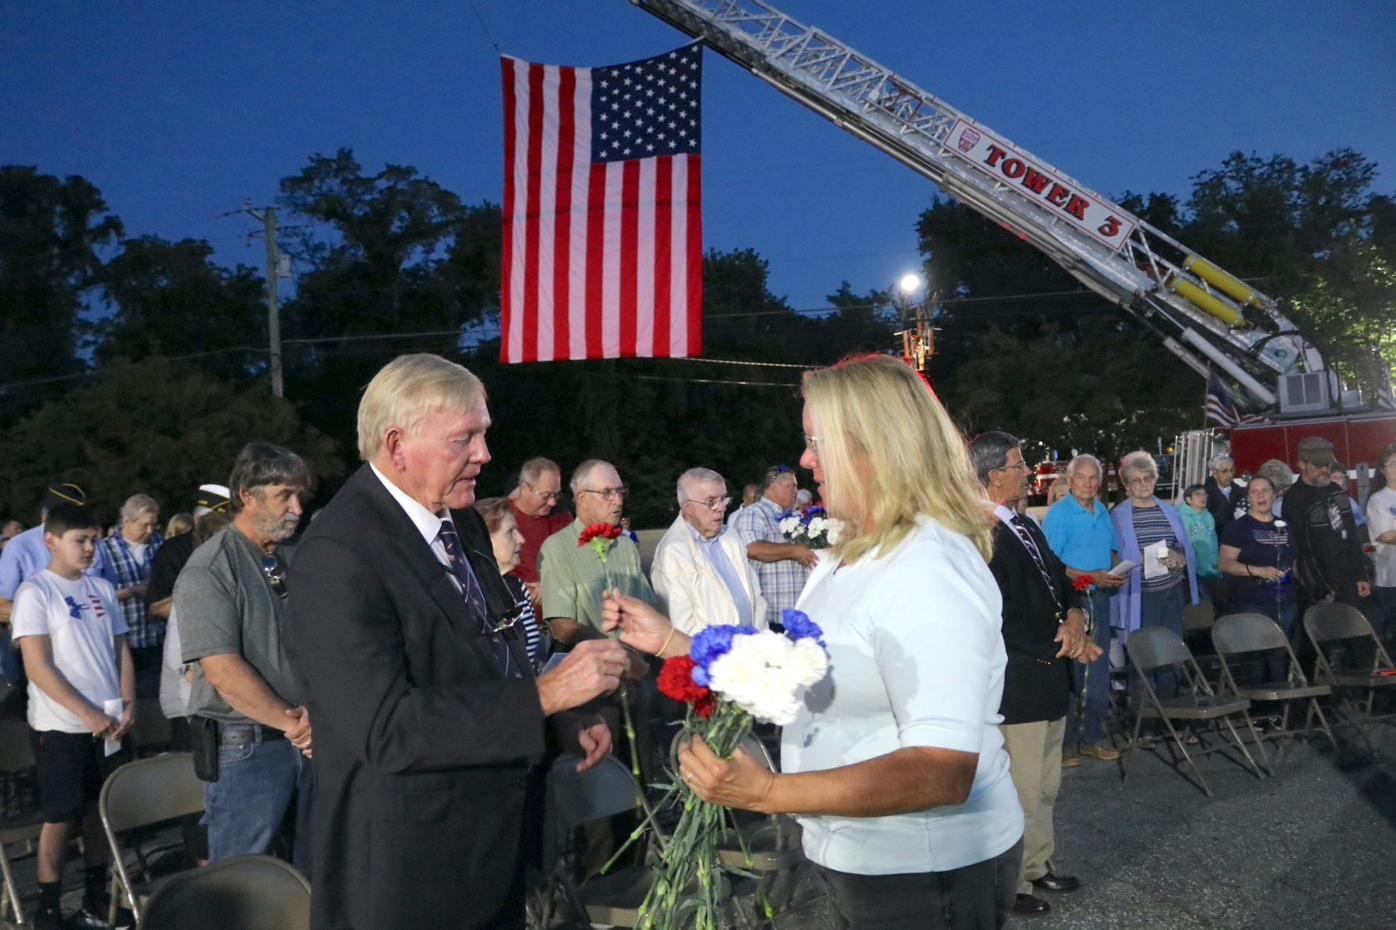 Towns remember 9/11 attacks 20 years later